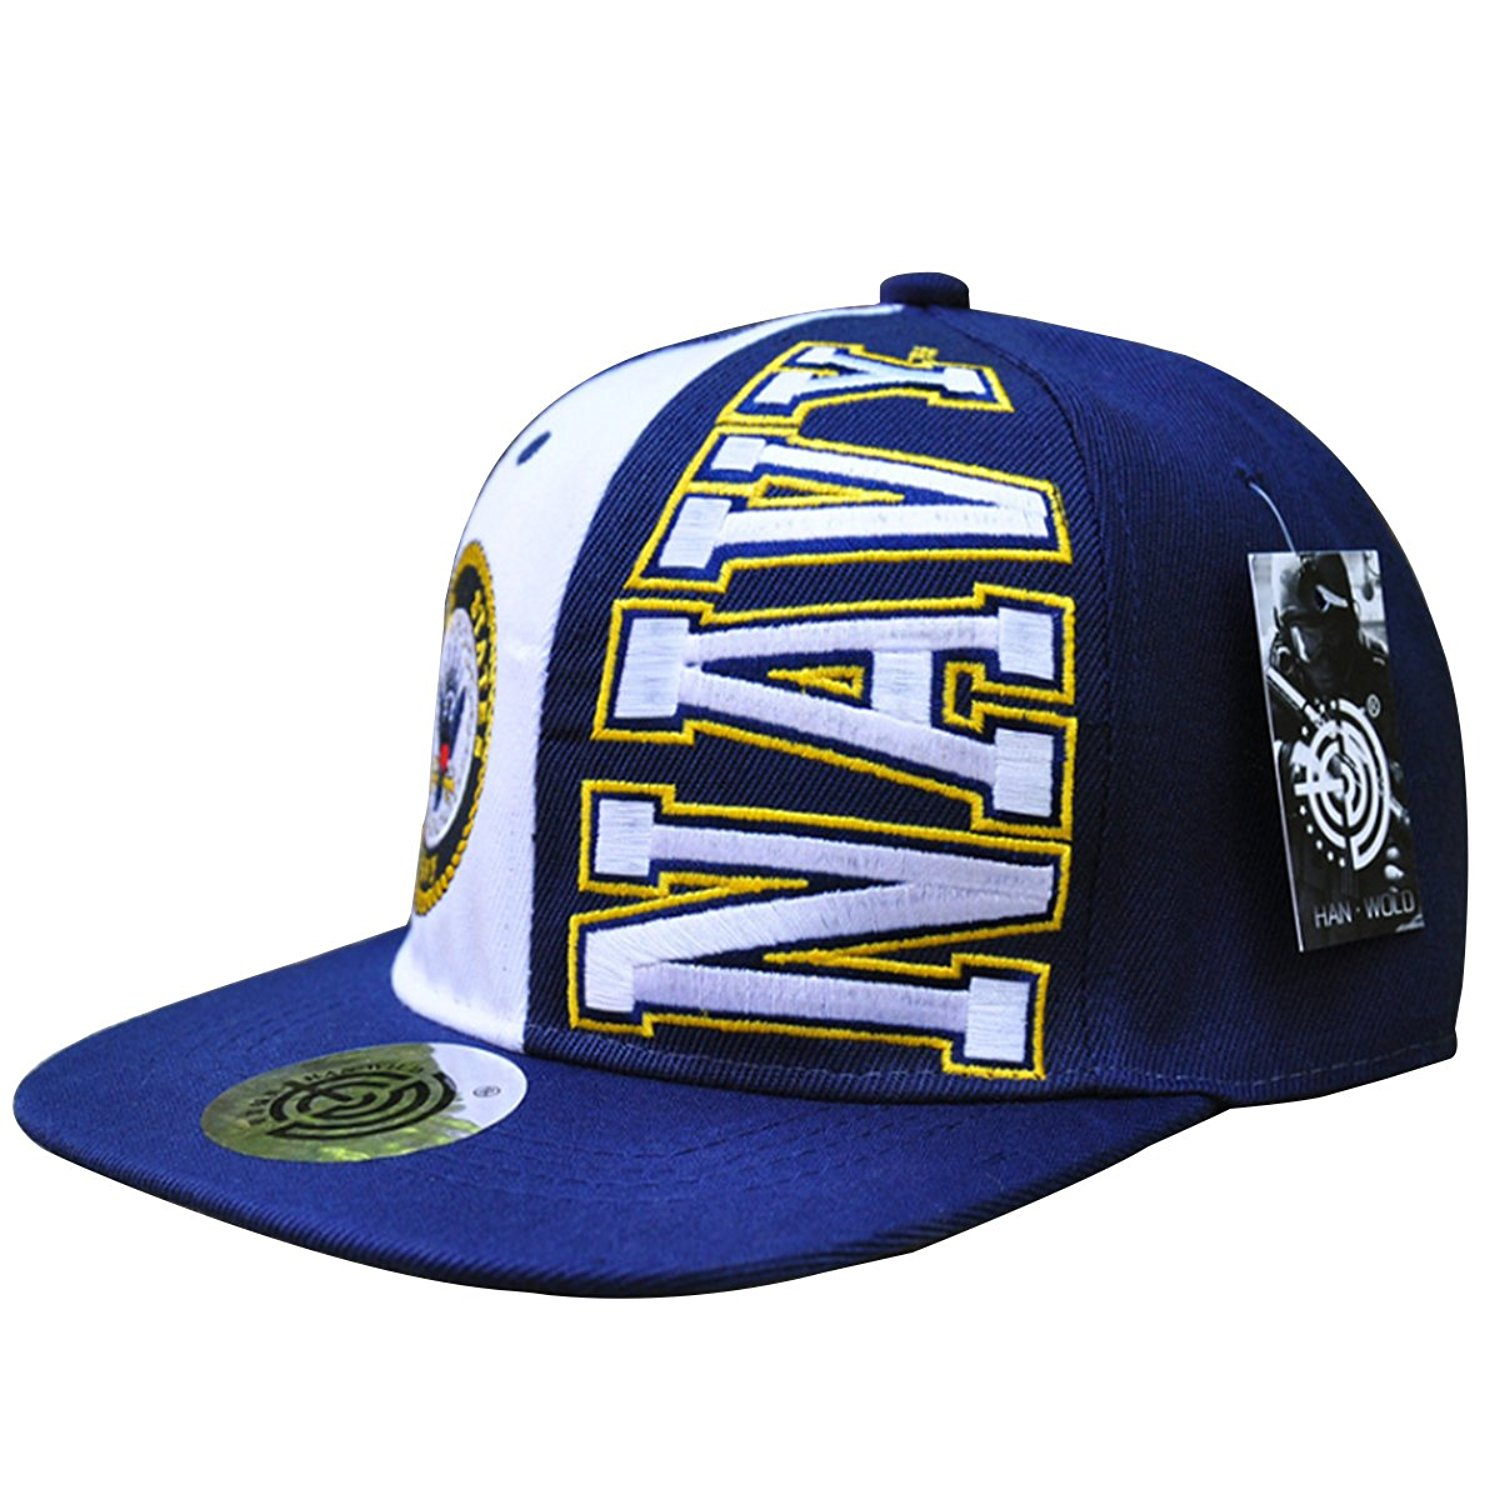 ba3a0ccd7b9 Get Quotations · Tphty Hat US Navy 3D Embroidery Hip Hop Baseball Cap US  Navy US Army Caps